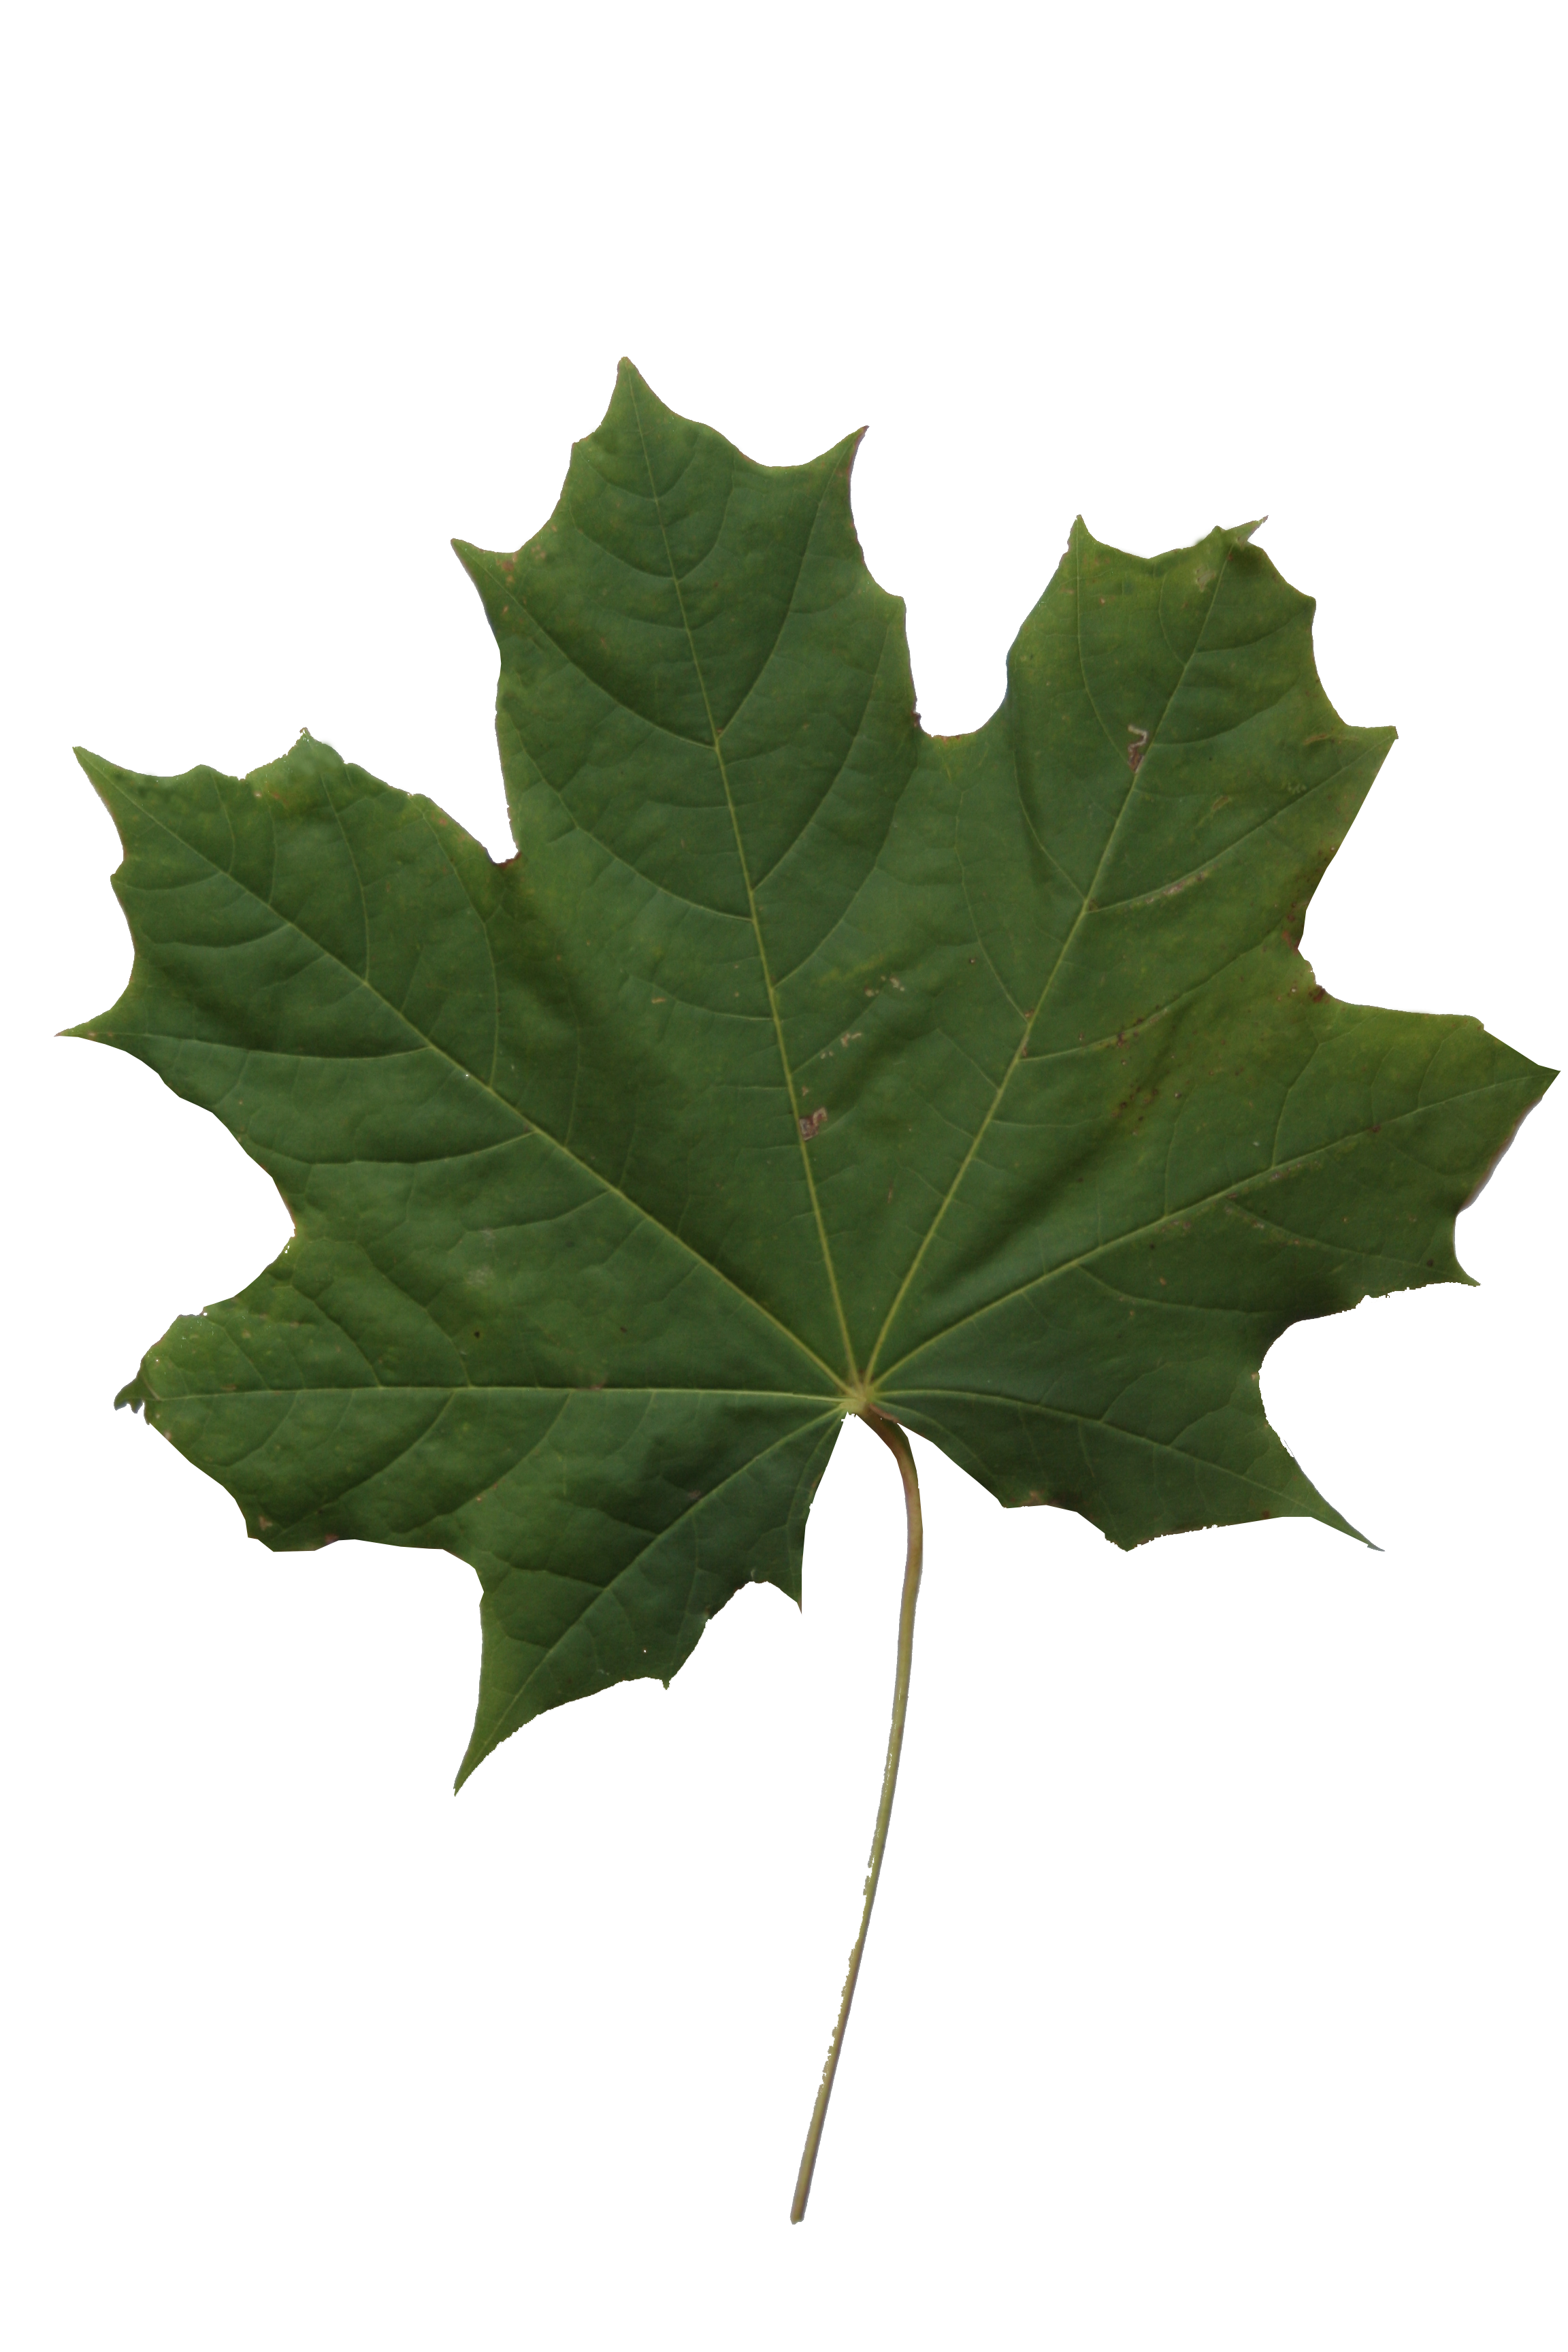 Maple Leaf Texture Free Cut Out People Trees And Leaves Find the best free stock images about leaf texture. maple leaf texture free cut out